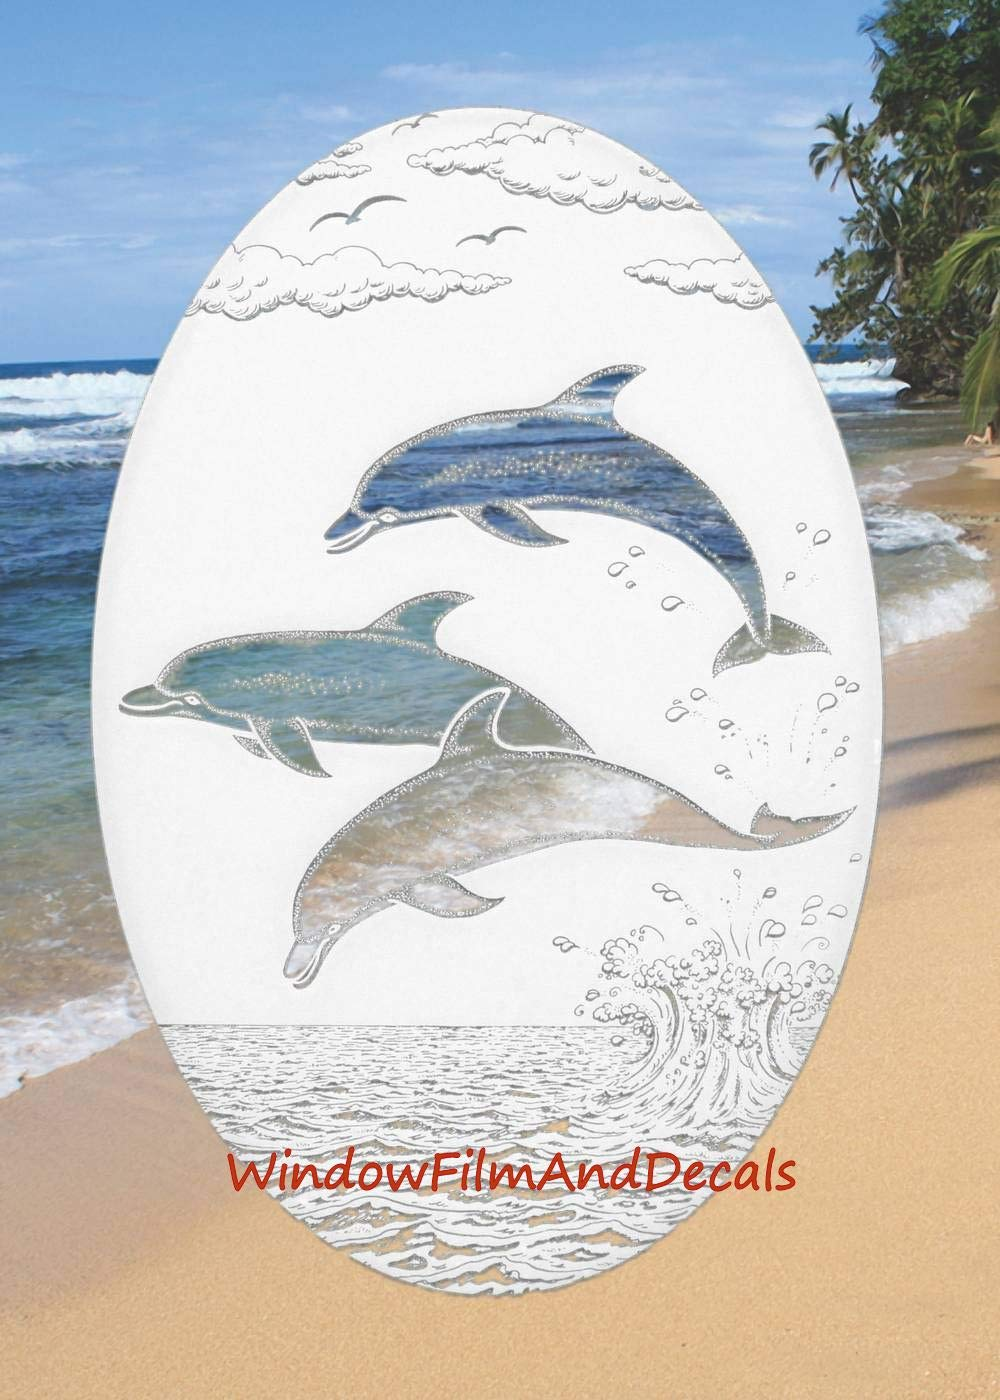 Dolphins Jumping Oval Etched Window Decal Vinyl Glass Cling - 21'' x 33'' - White with Clear Design Elements by Vinyl Etchings